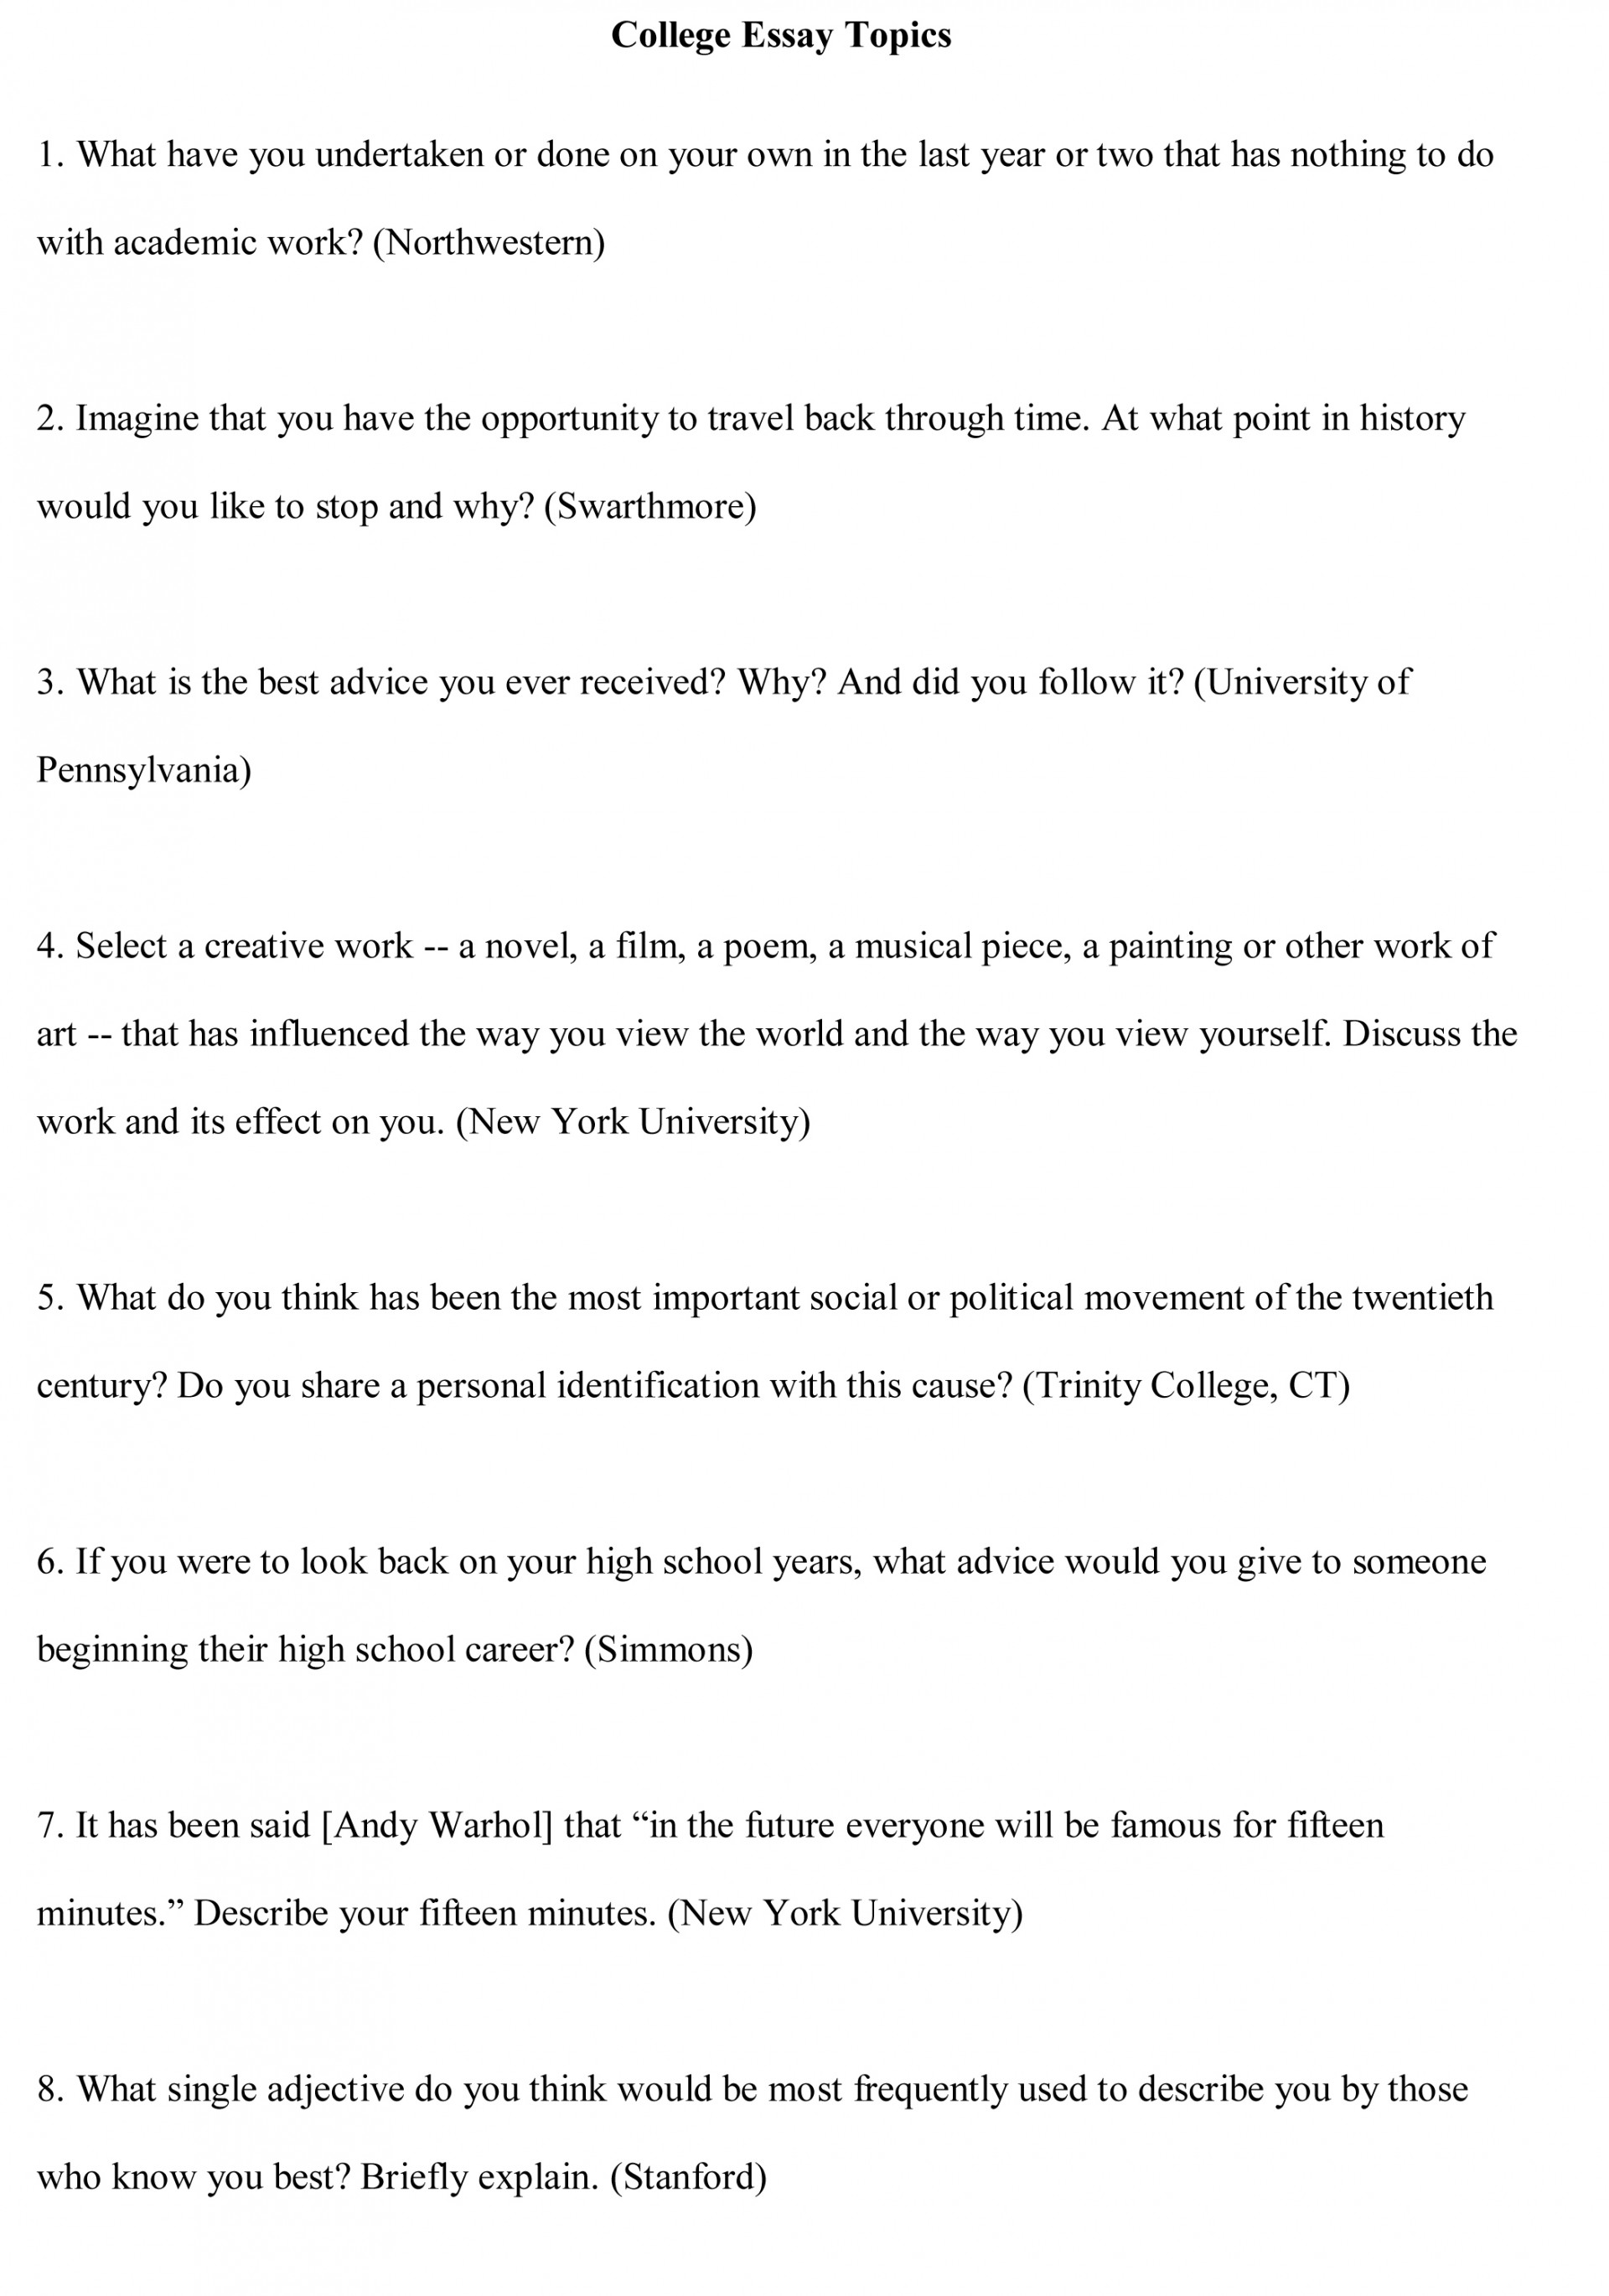 014 Essay Topics College Free Sample1 Archaicawful For High School English Kids Grade 8 Pdf 1920